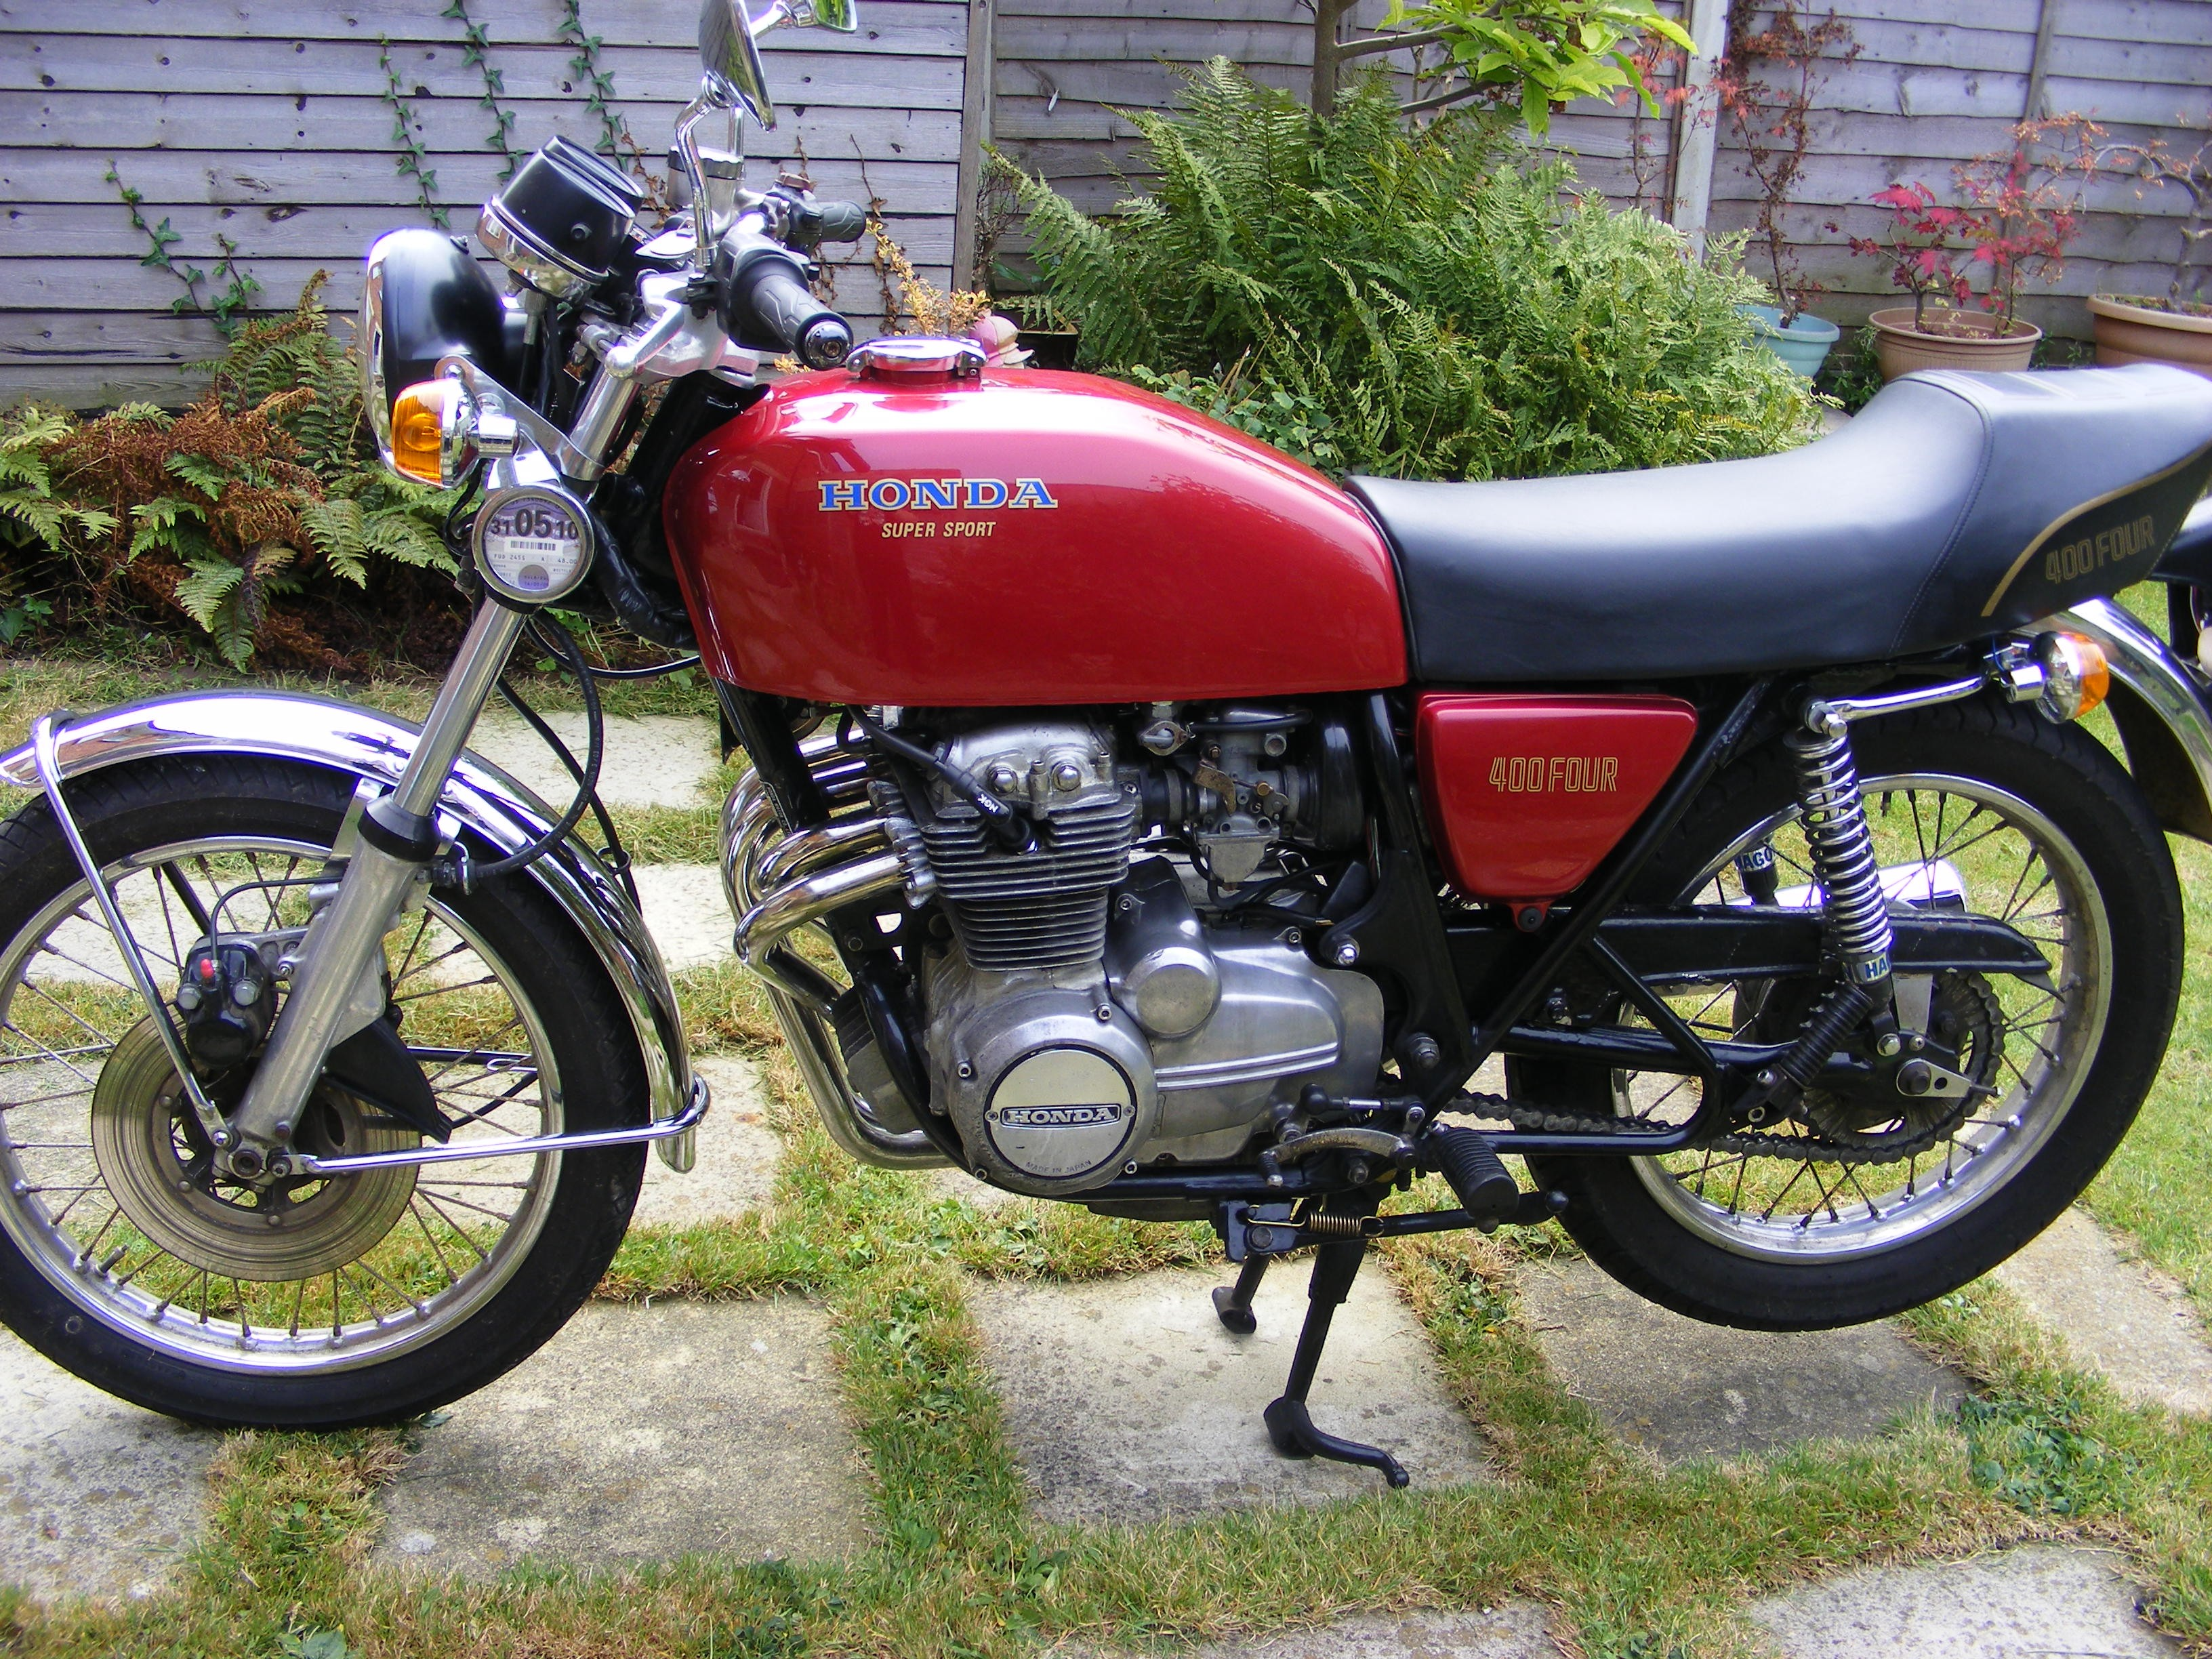 Honda Cb4004 F2 1977 From Jodonut99 Ct70 Wiring Diagram Cb400 4